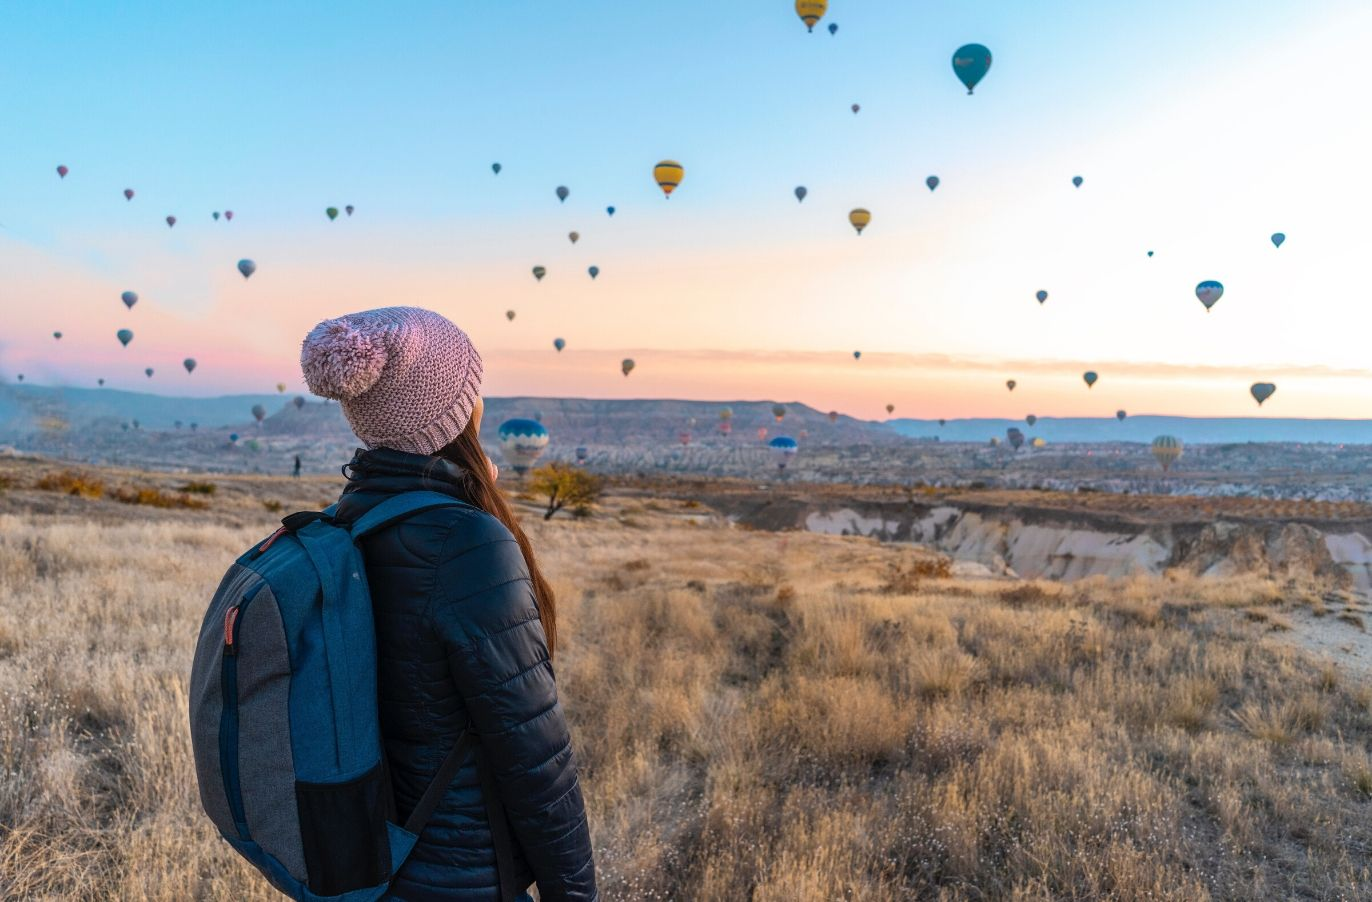 woman in winter cloths looking into the distance at hot air balloons